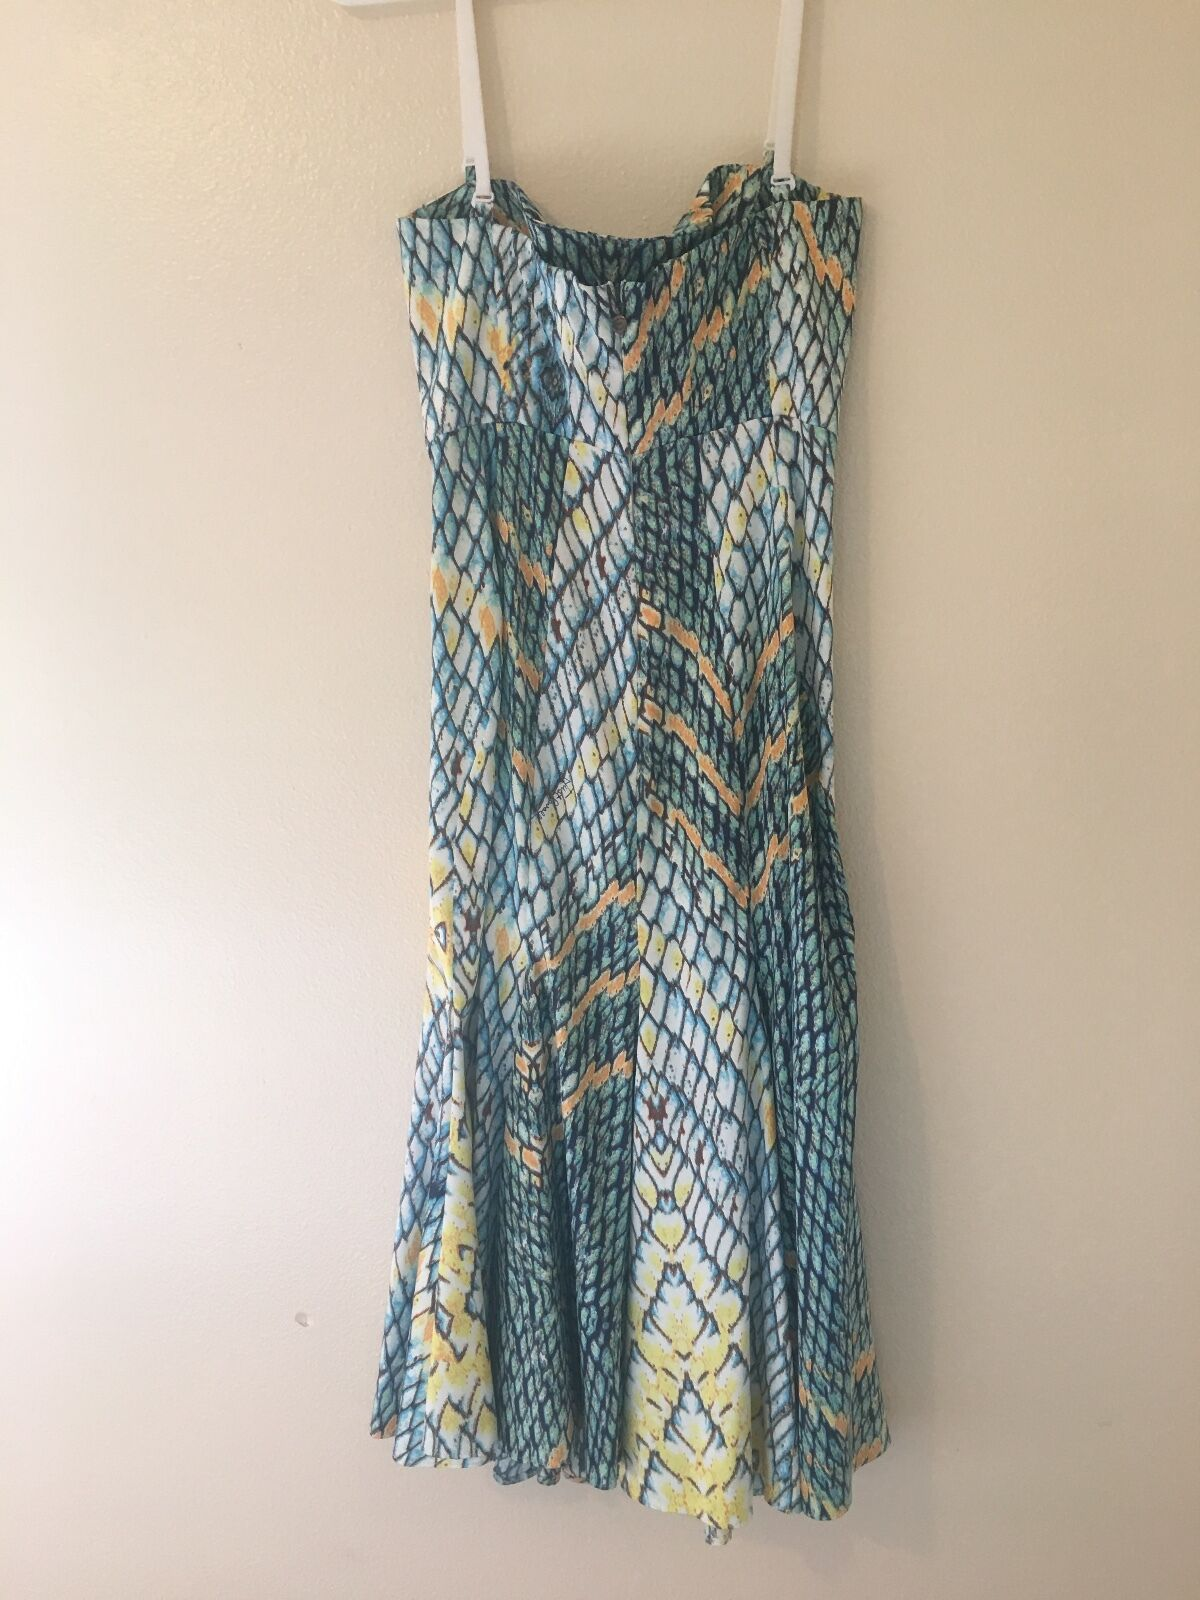 AUTHENTIC JUST CAVALLI CAVALLI CAVALLI BY ROBERTO CAVALLI DRESS  SIZE 4  NEW (OTHER) 353fa8